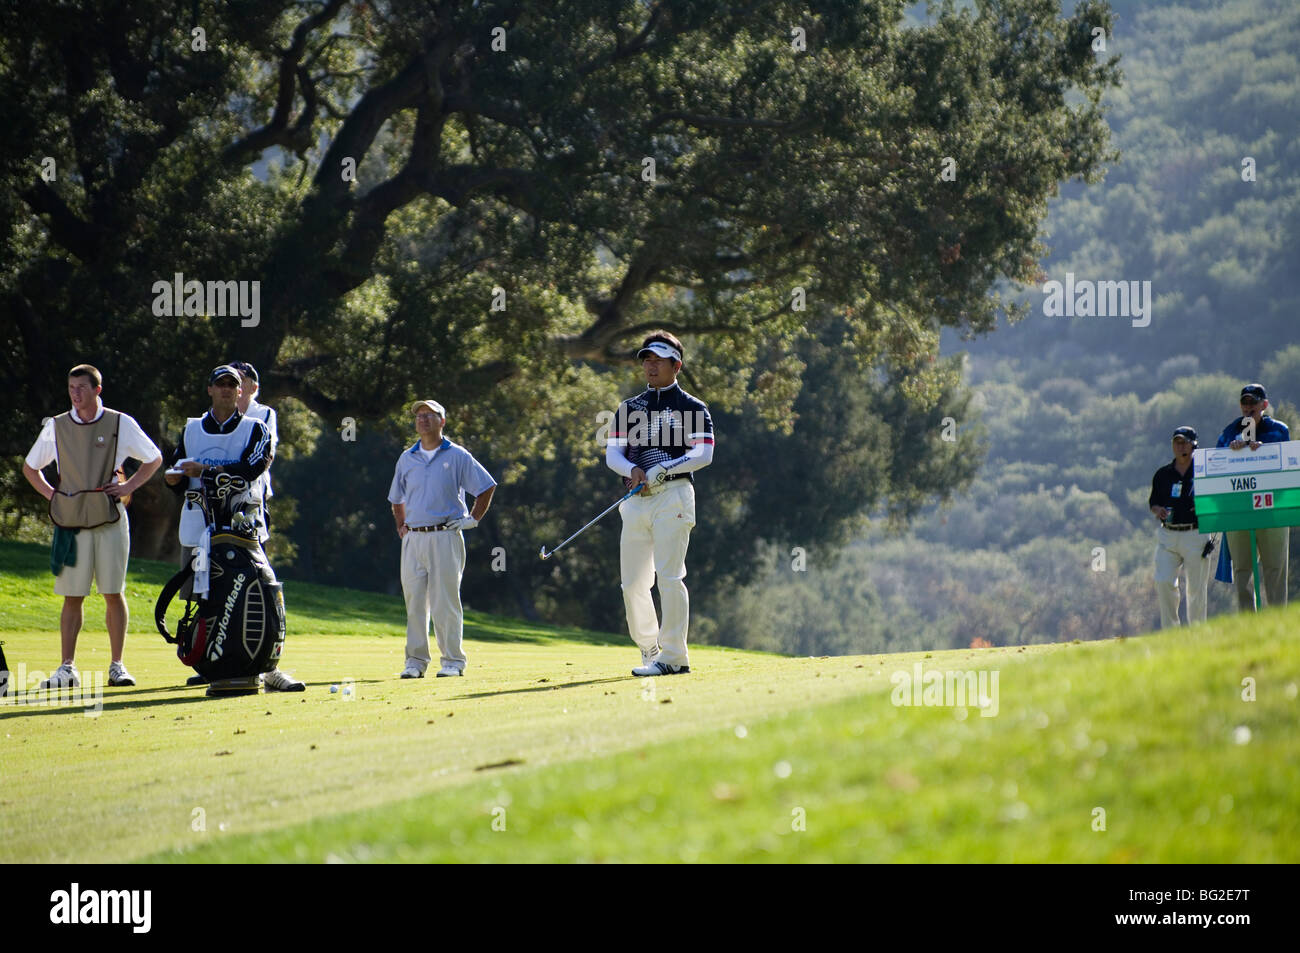 Y.E. Yang hits his approach shot to the 18t green of the Chevron World Golf Challenge at Sherwood Country Club. - Stock Image